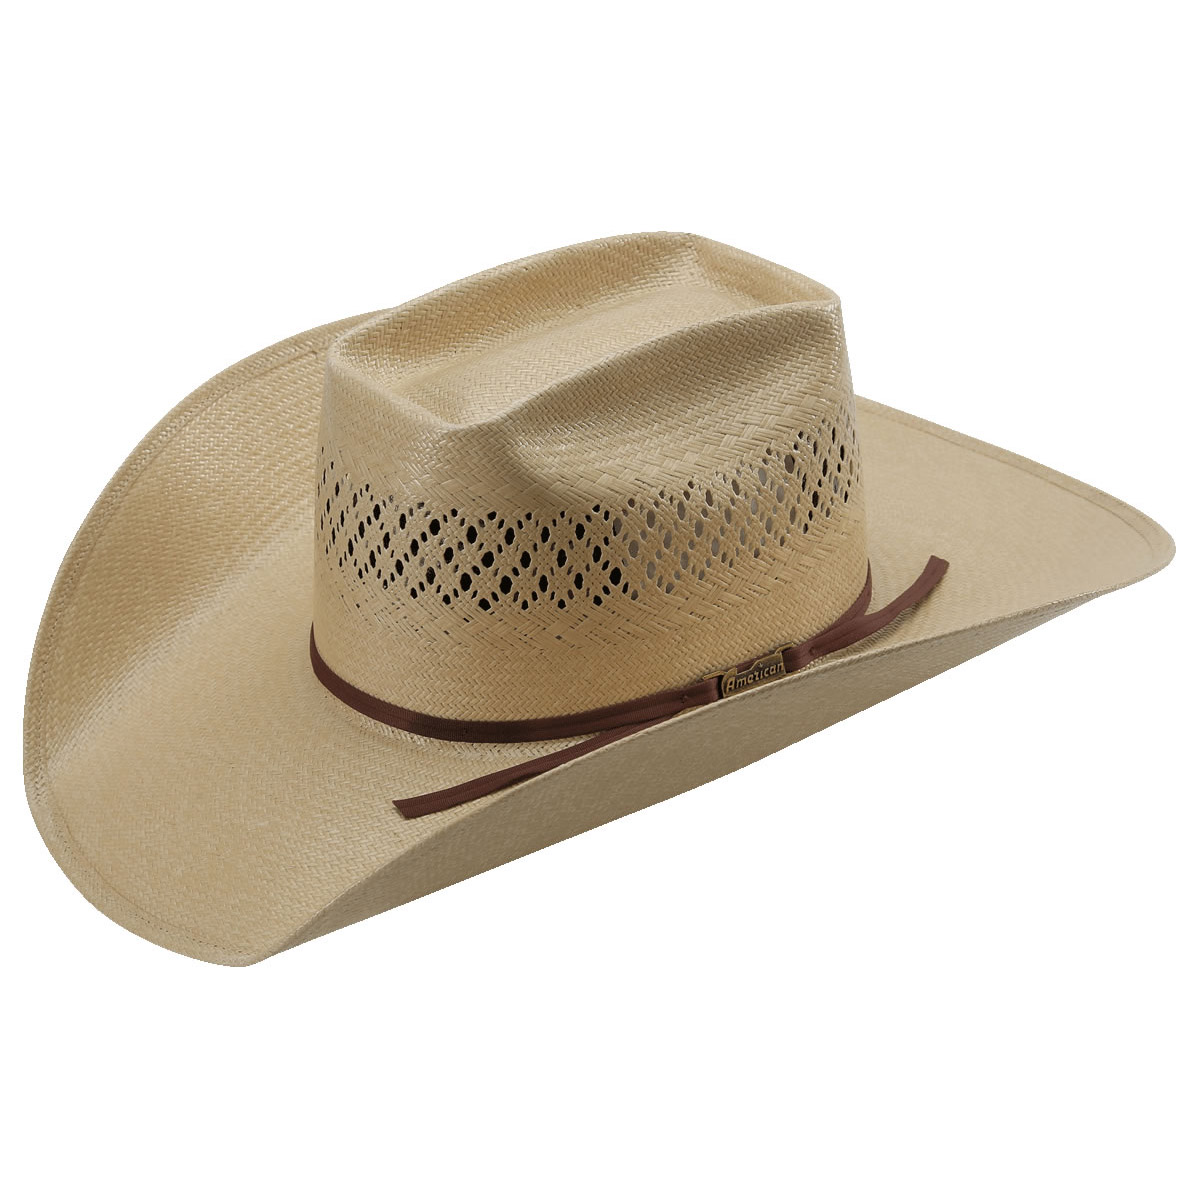 Pungo Ridge - American Hat Co 20☆ Fancy Vented Straw Hat - Tan ... 155ad75864d6